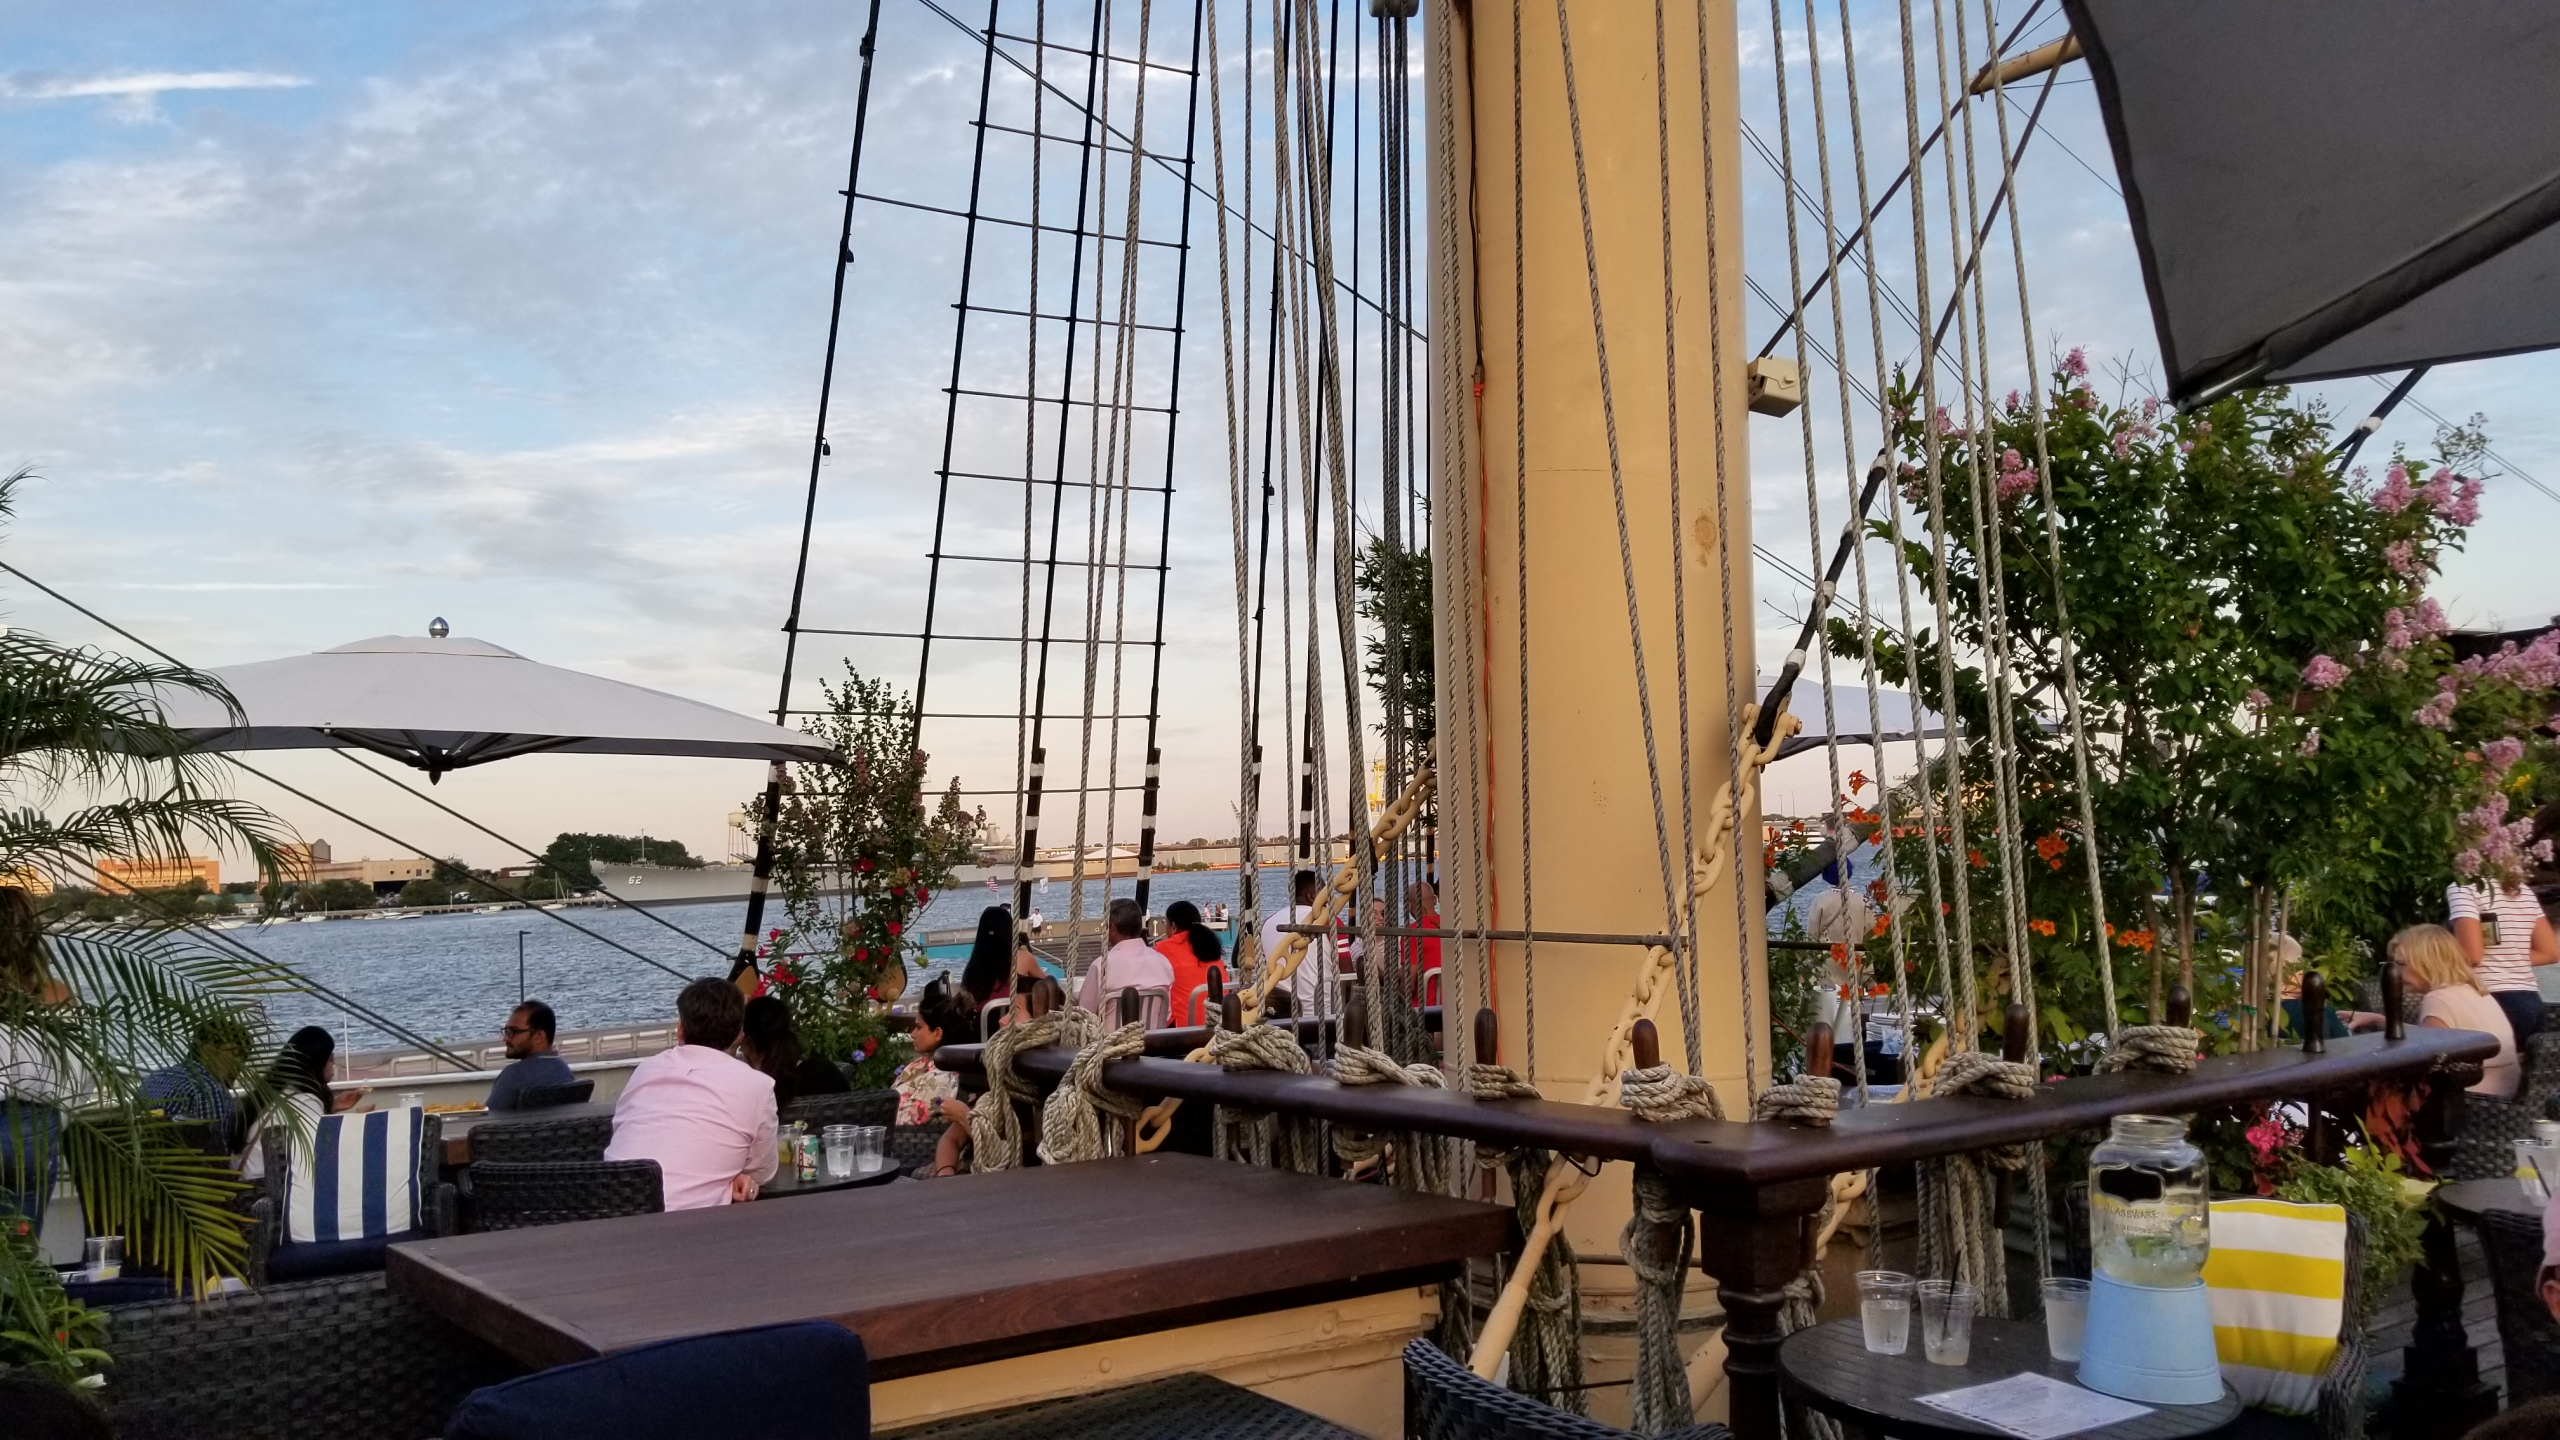 Tour Philadelphia's historic Seaport from the upper deck bar at the Moshulu, a restored clipper ship.